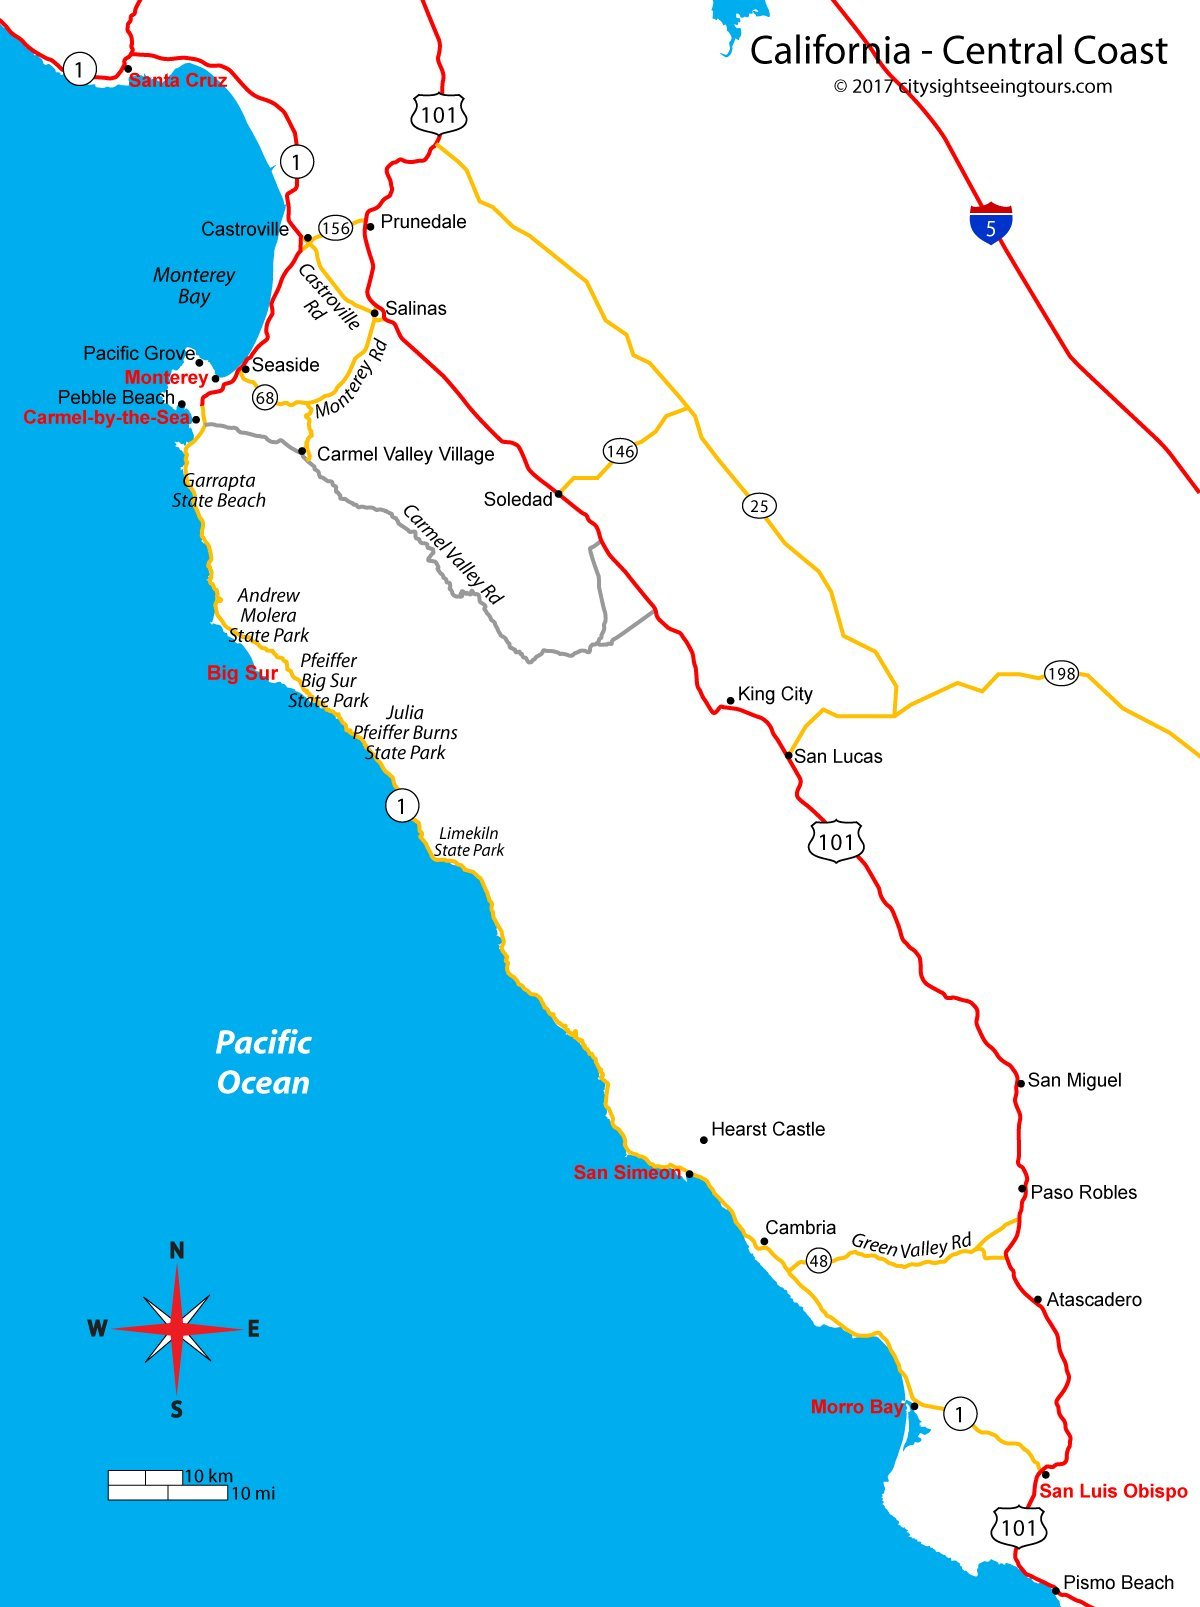 Ca Central Coast Map California Map With Cities Central California - Pismo Beach California Map